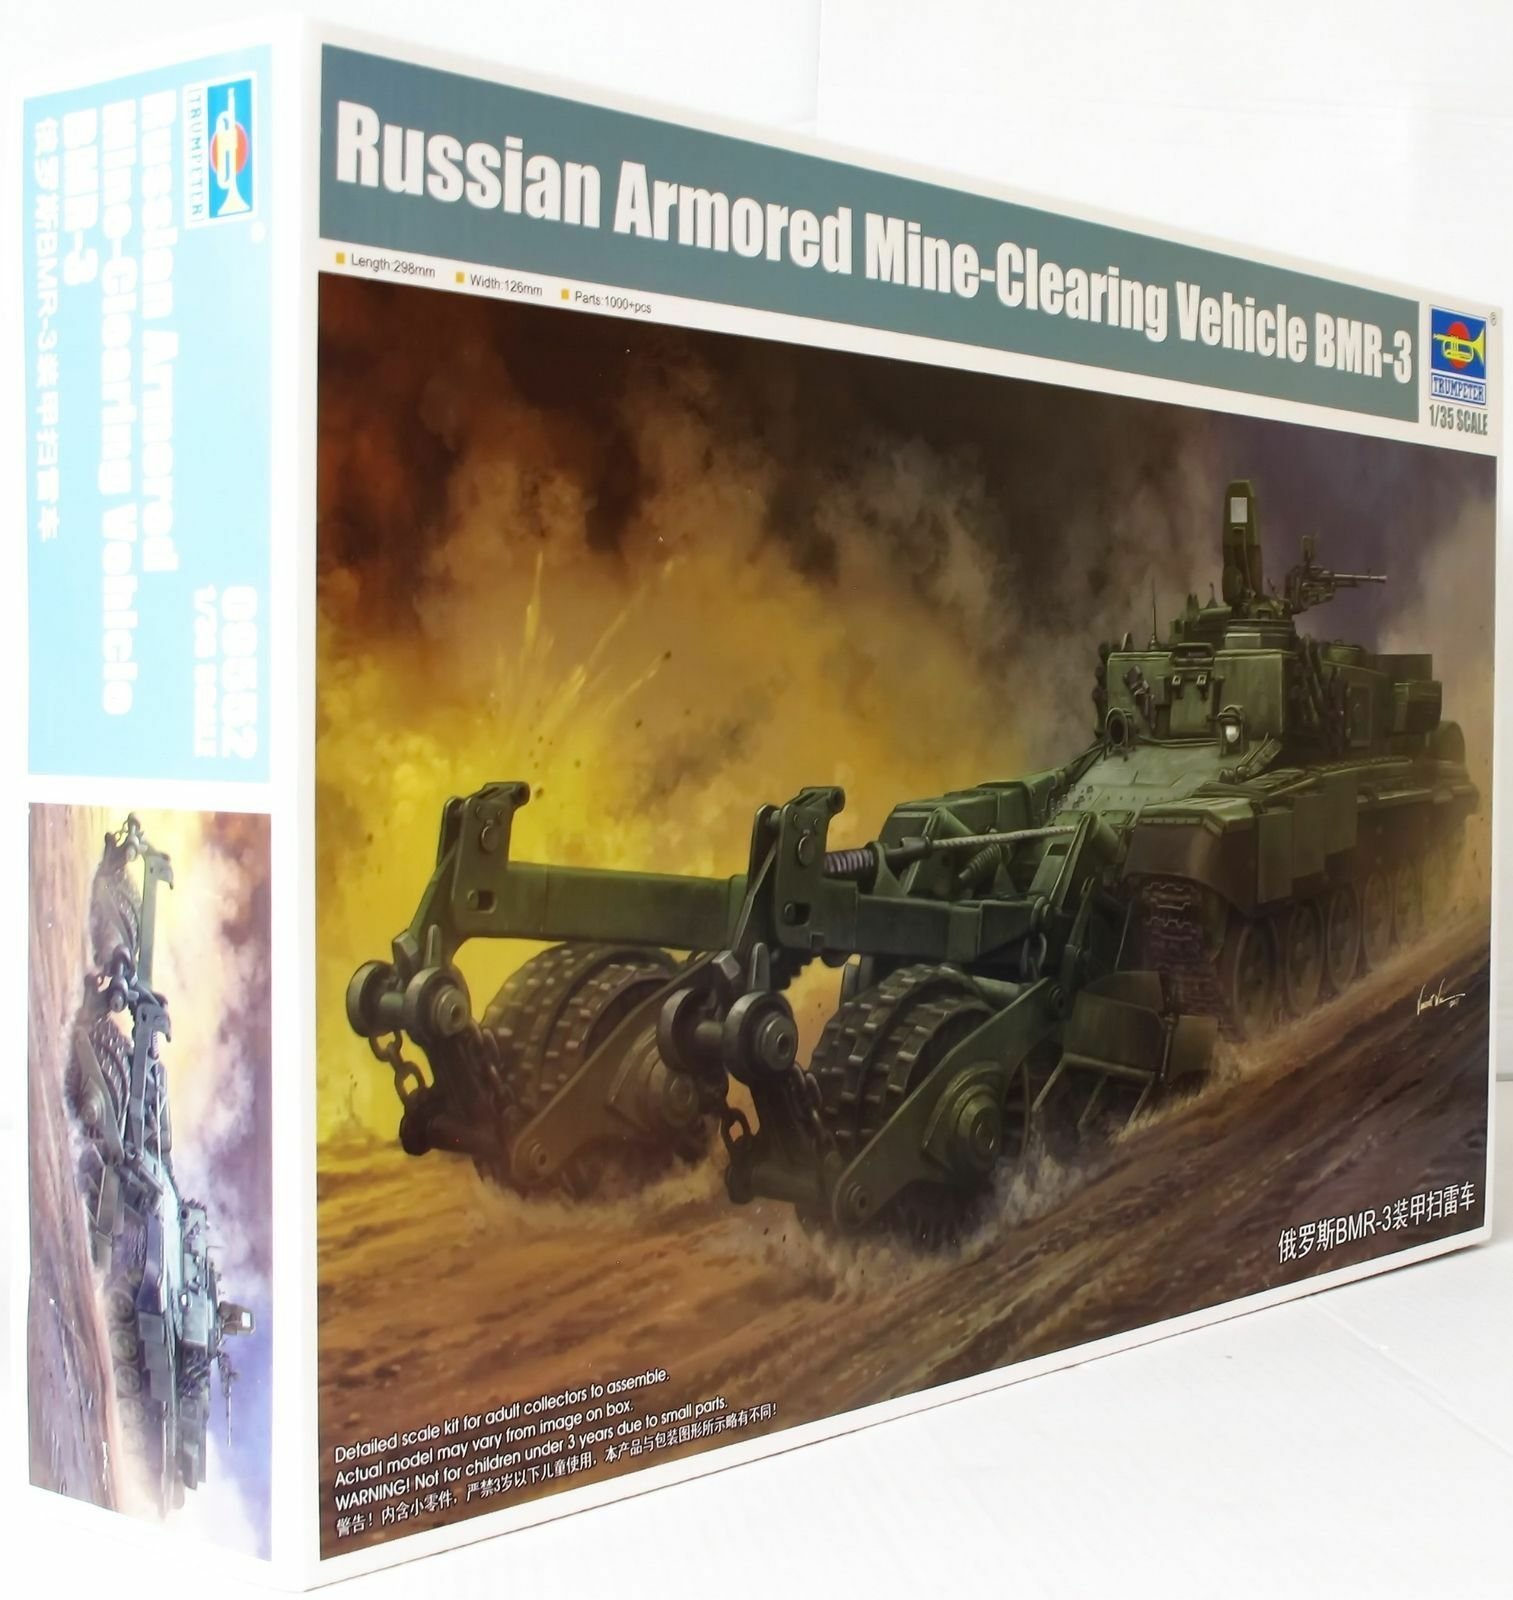 Trumpeter 1 35 09552 Russian Armd Mine-Clearing Vehicle BMR-3 Model Military Kit